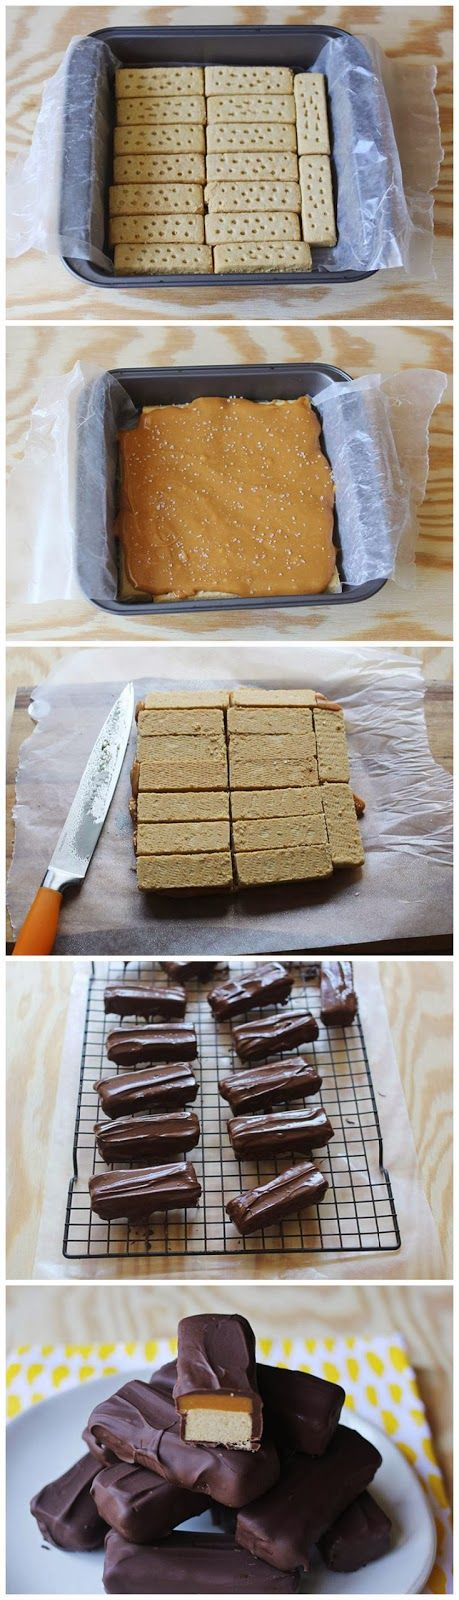 HOMEMADE TWIX BARS | Cookie & Candy Ideas | Pinterest